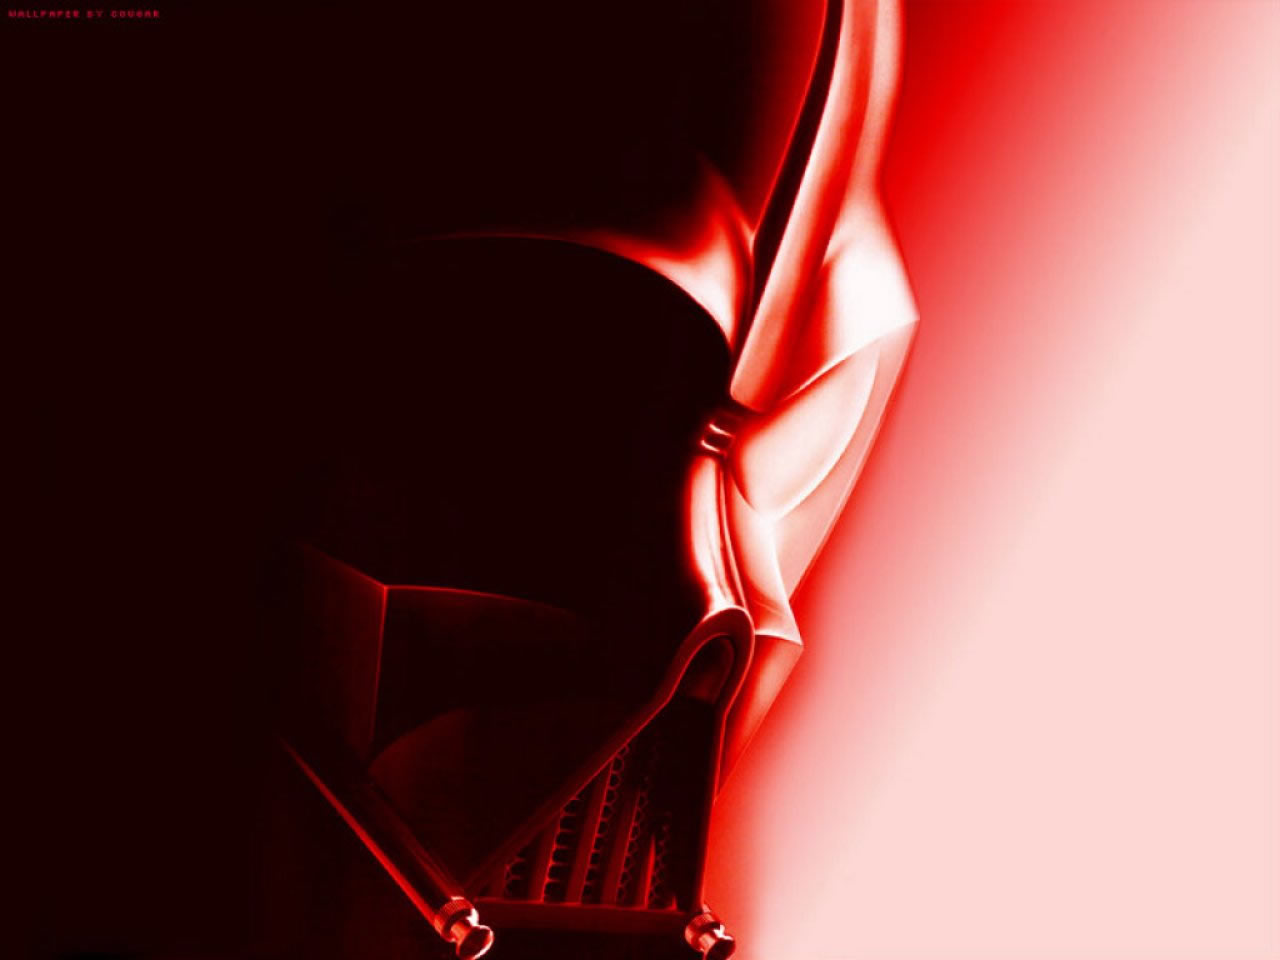 Wallpaper Star Wars Masque Dark Vador